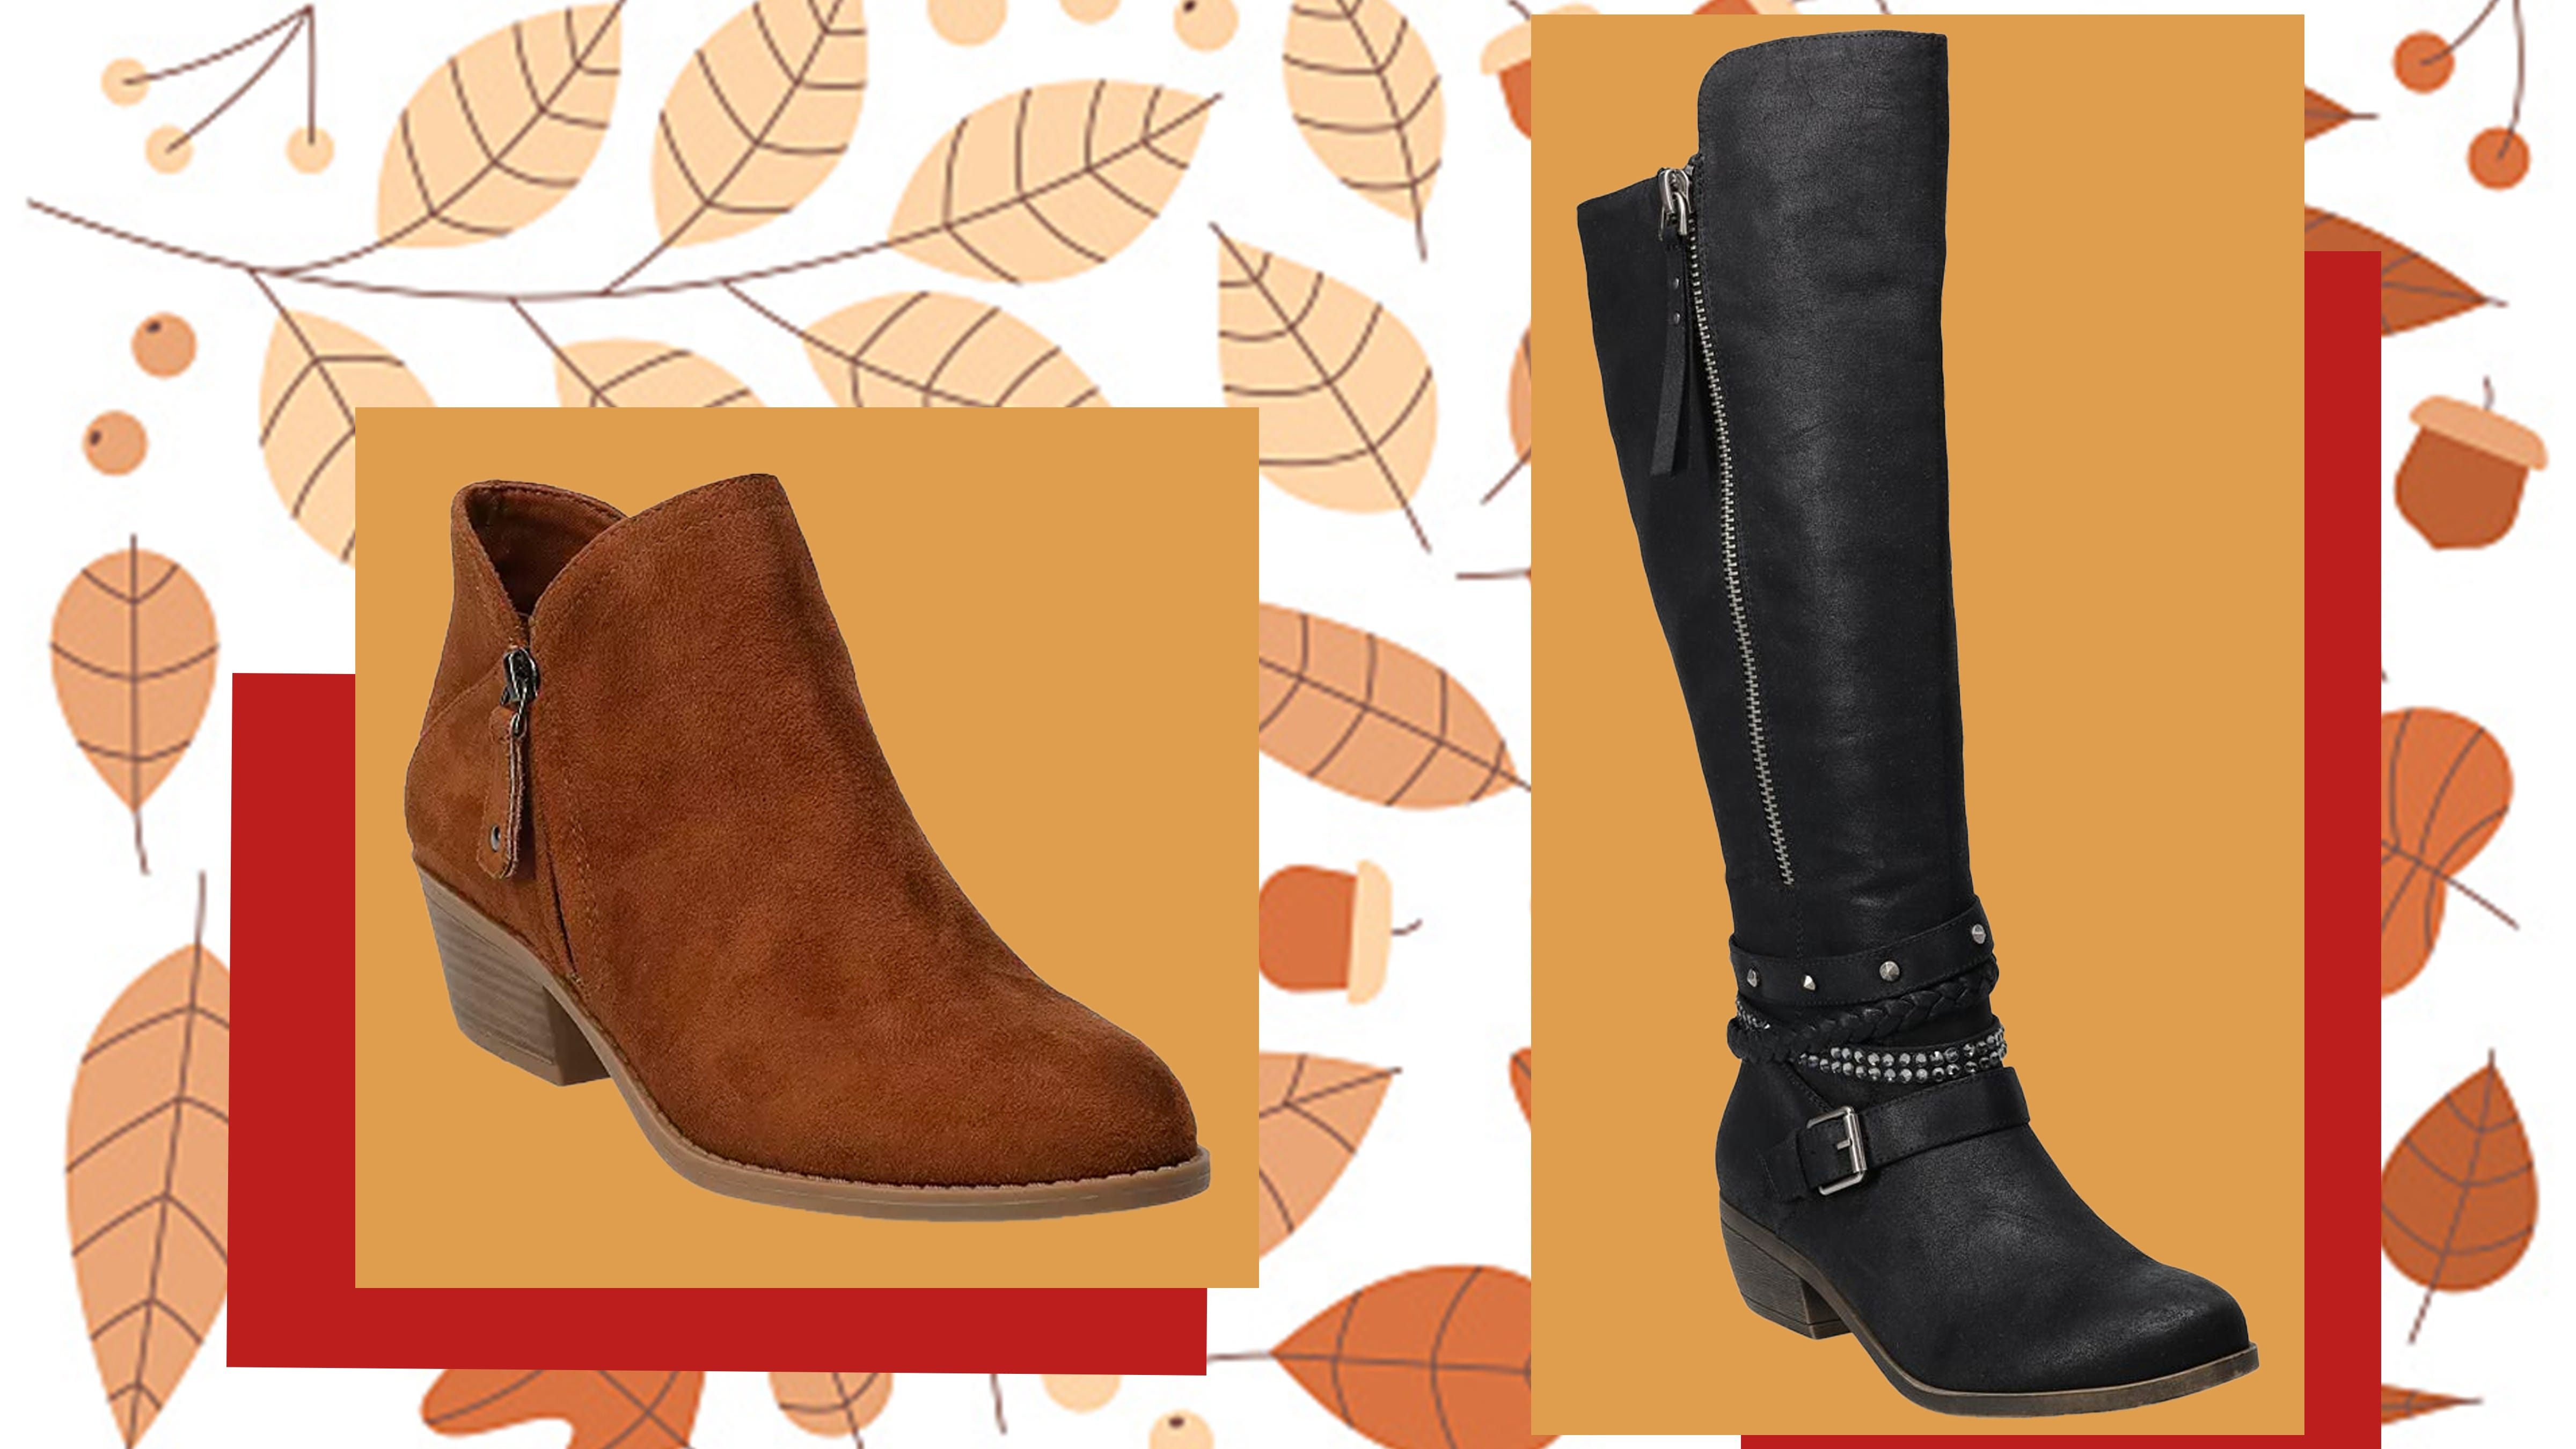 Shop women's boots on sale for $20 this